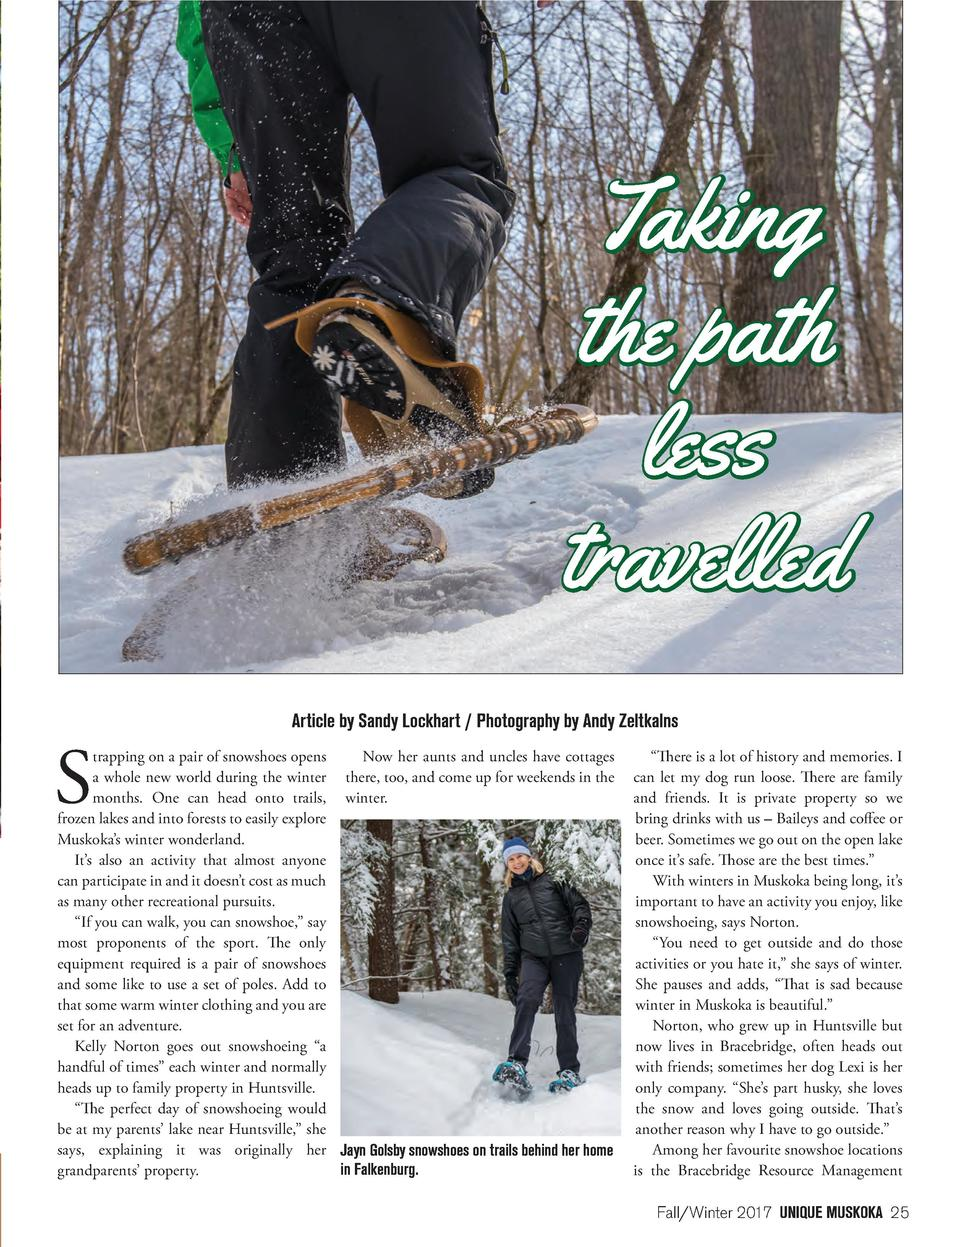 S  Article by Sandy Lockhart   Photography by Andy Zeltkalns  trapping on a pair of snowshoes opens Now her aunts and uncl...